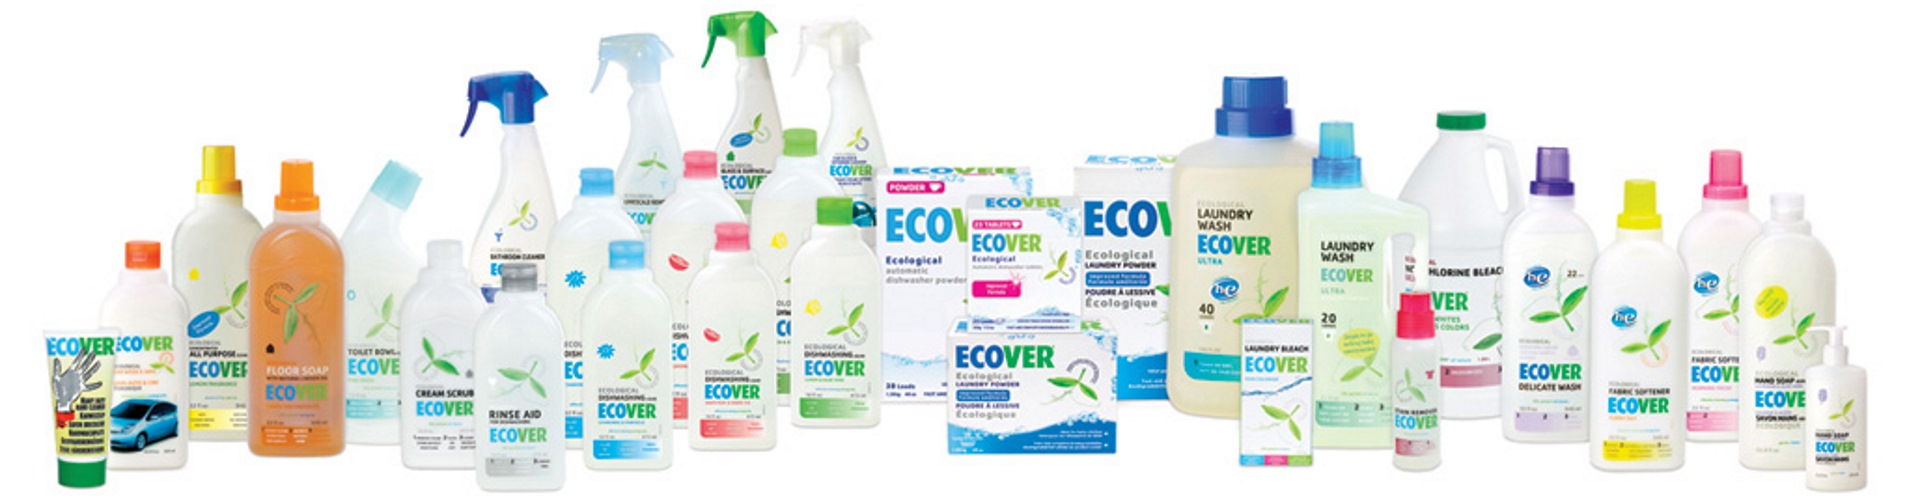 Environmentally Friendly Cleaner in Annan, Dumfries & Galloway for Home and Office